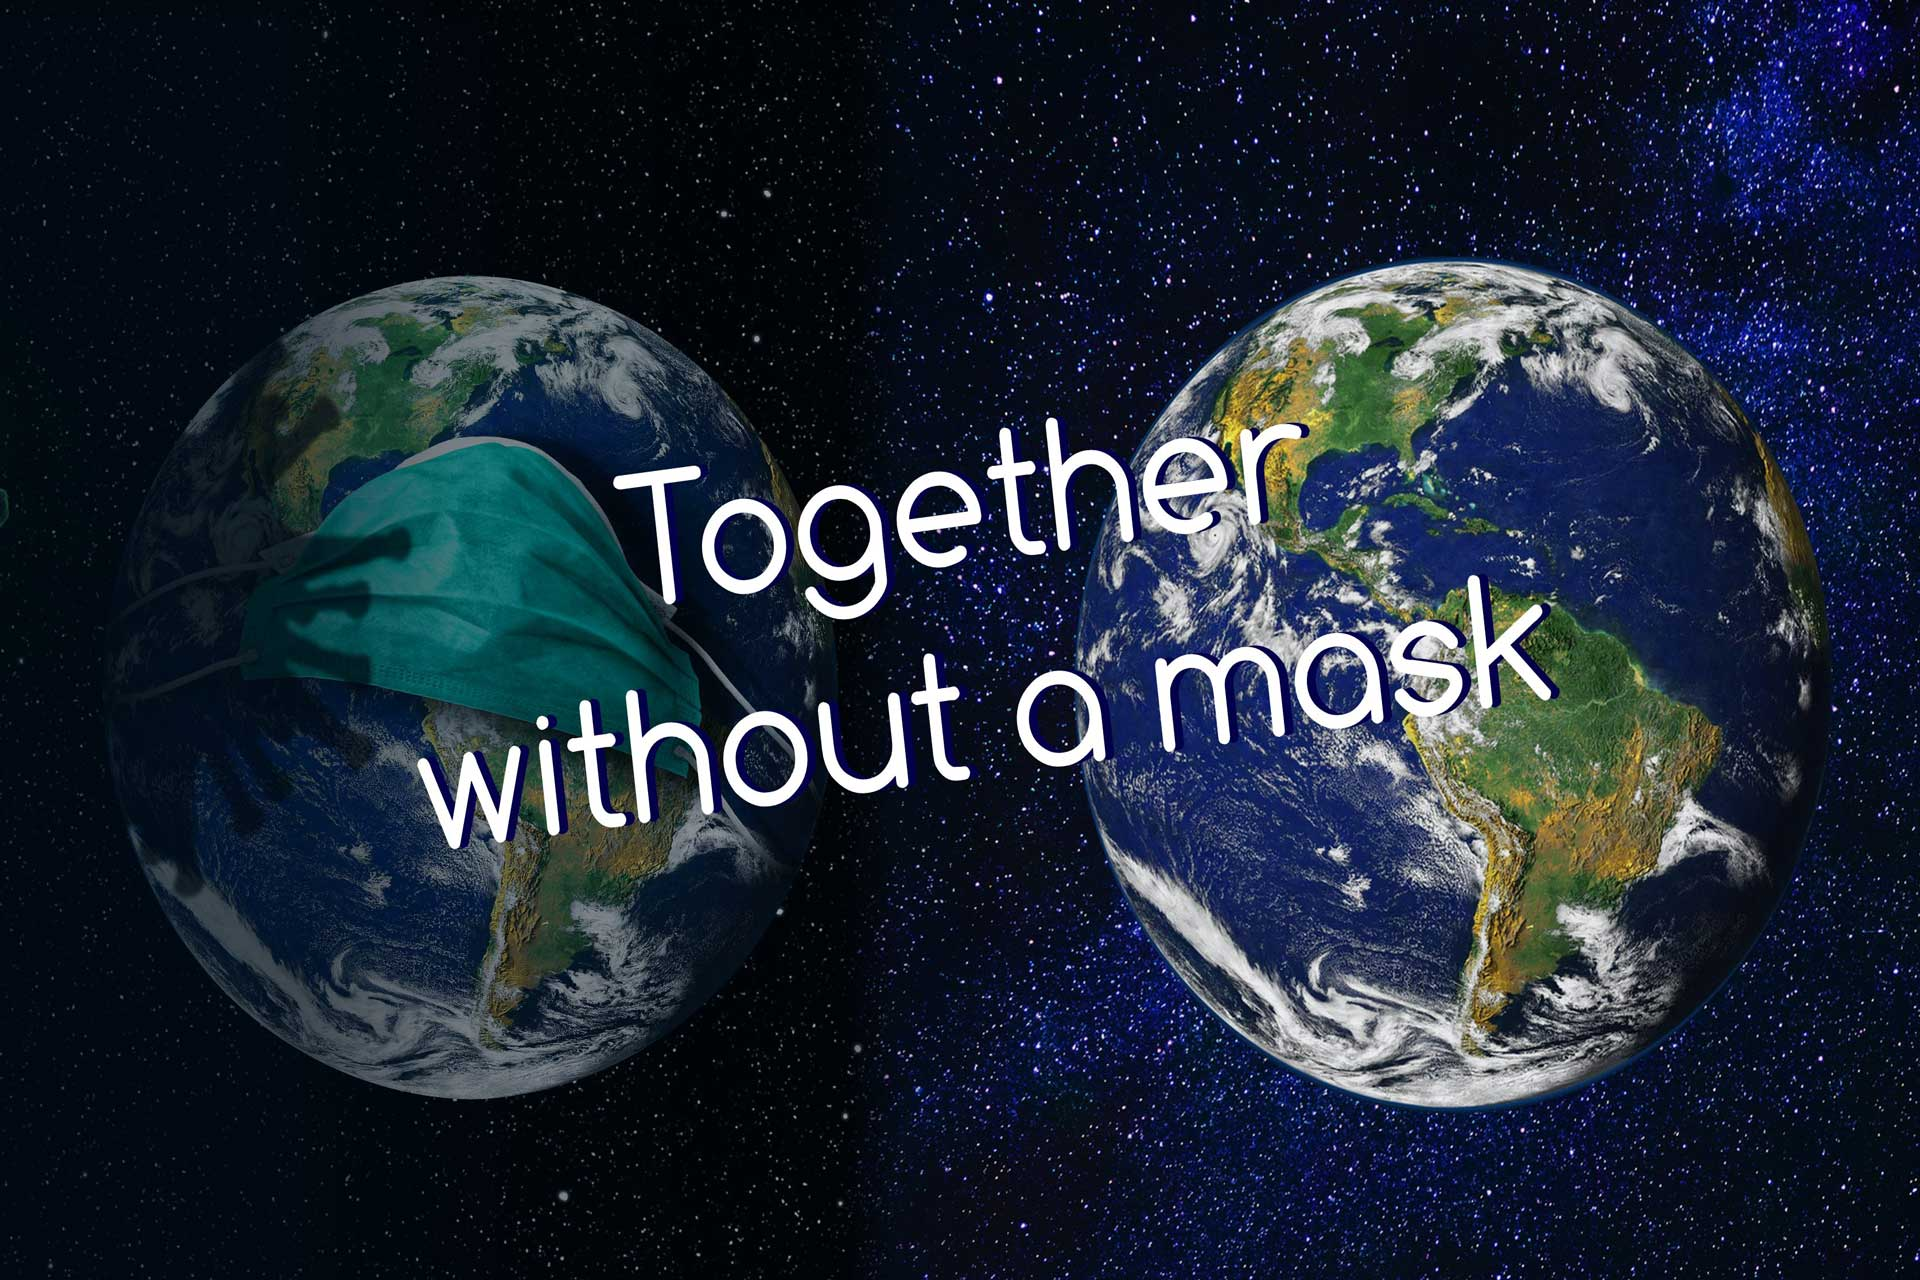 Together without a mask